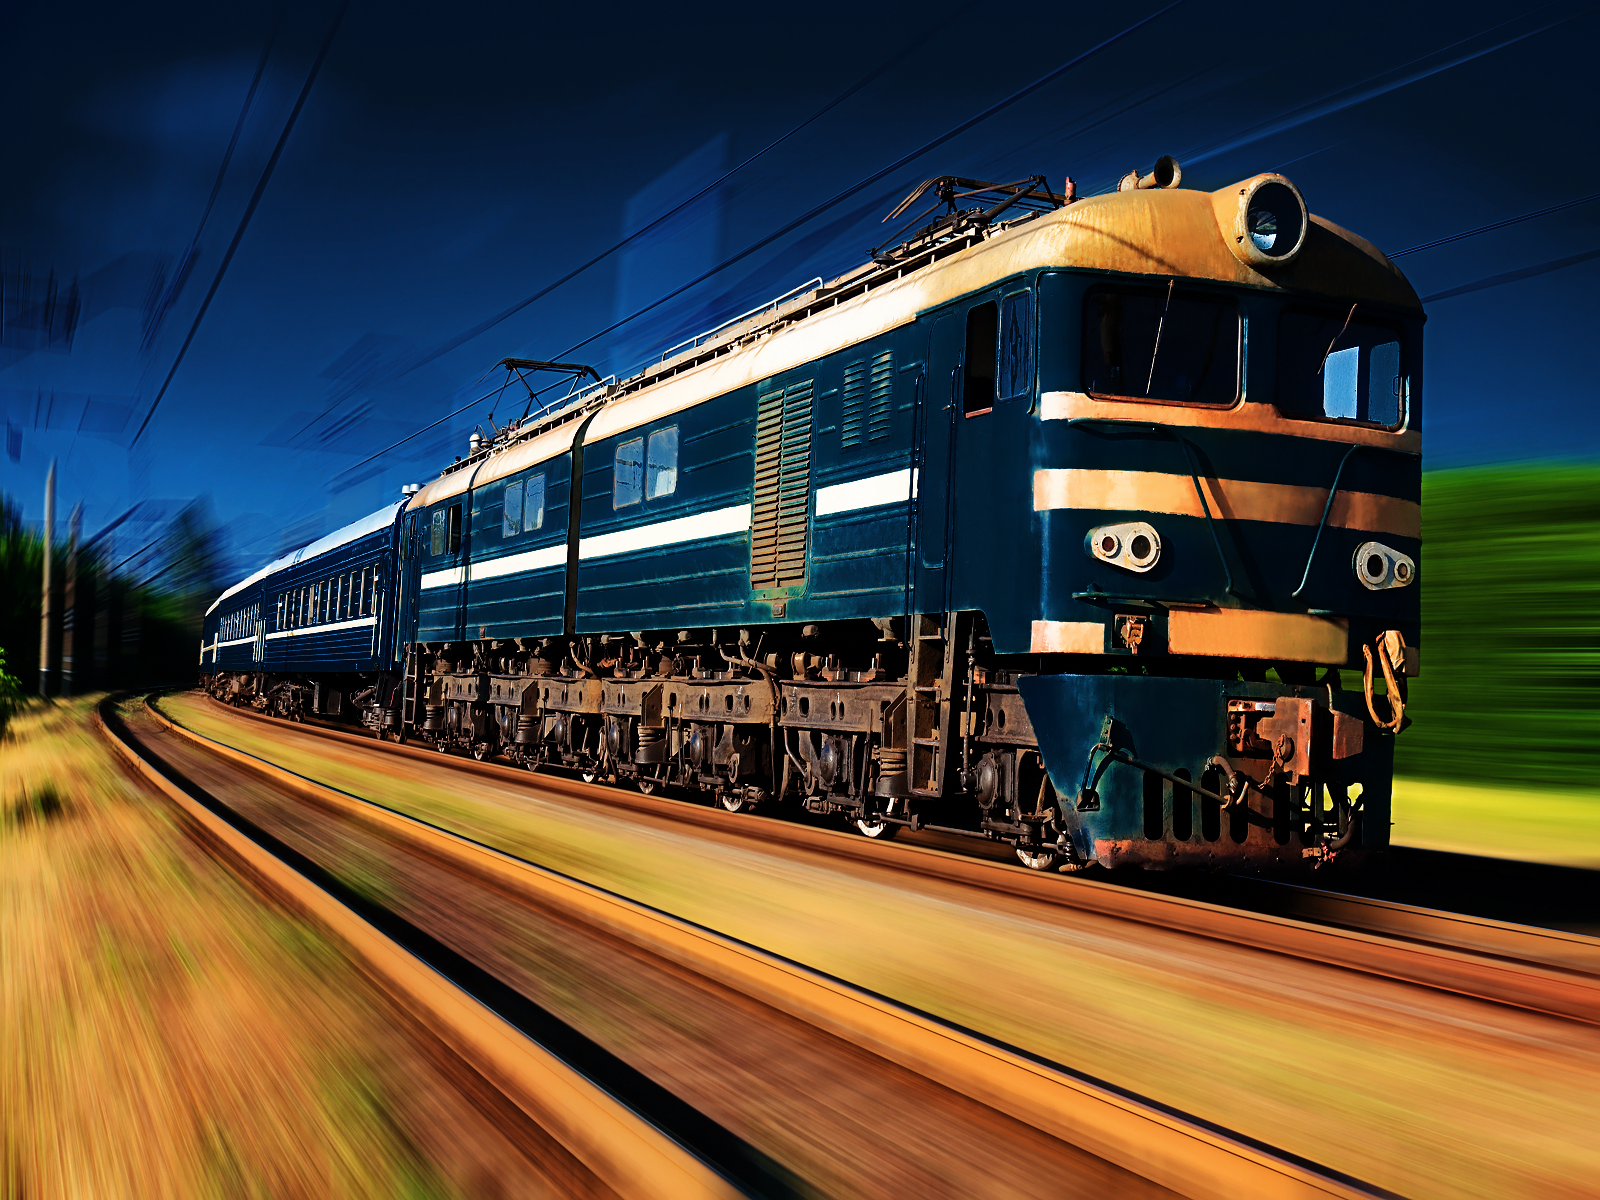 Train wallpaper 1600x1200 44156